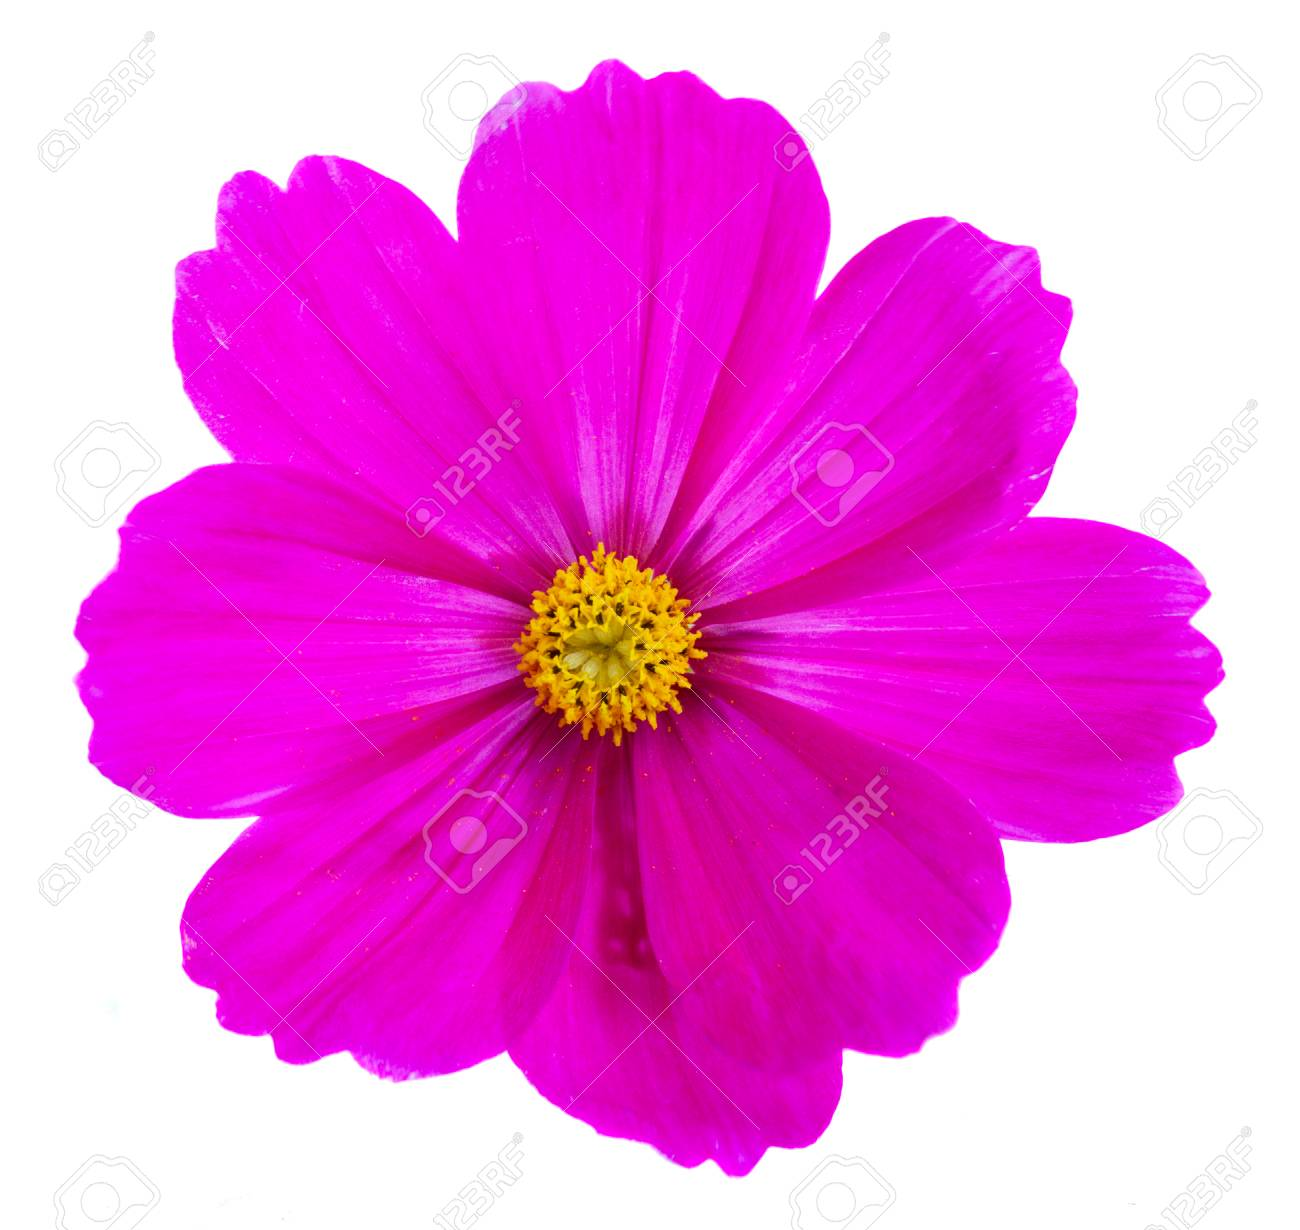 One cosmos dark pink flower isolated on white background stock photo one cosmos dark pink flower isolated on white background stock photo 59404323 mightylinksfo